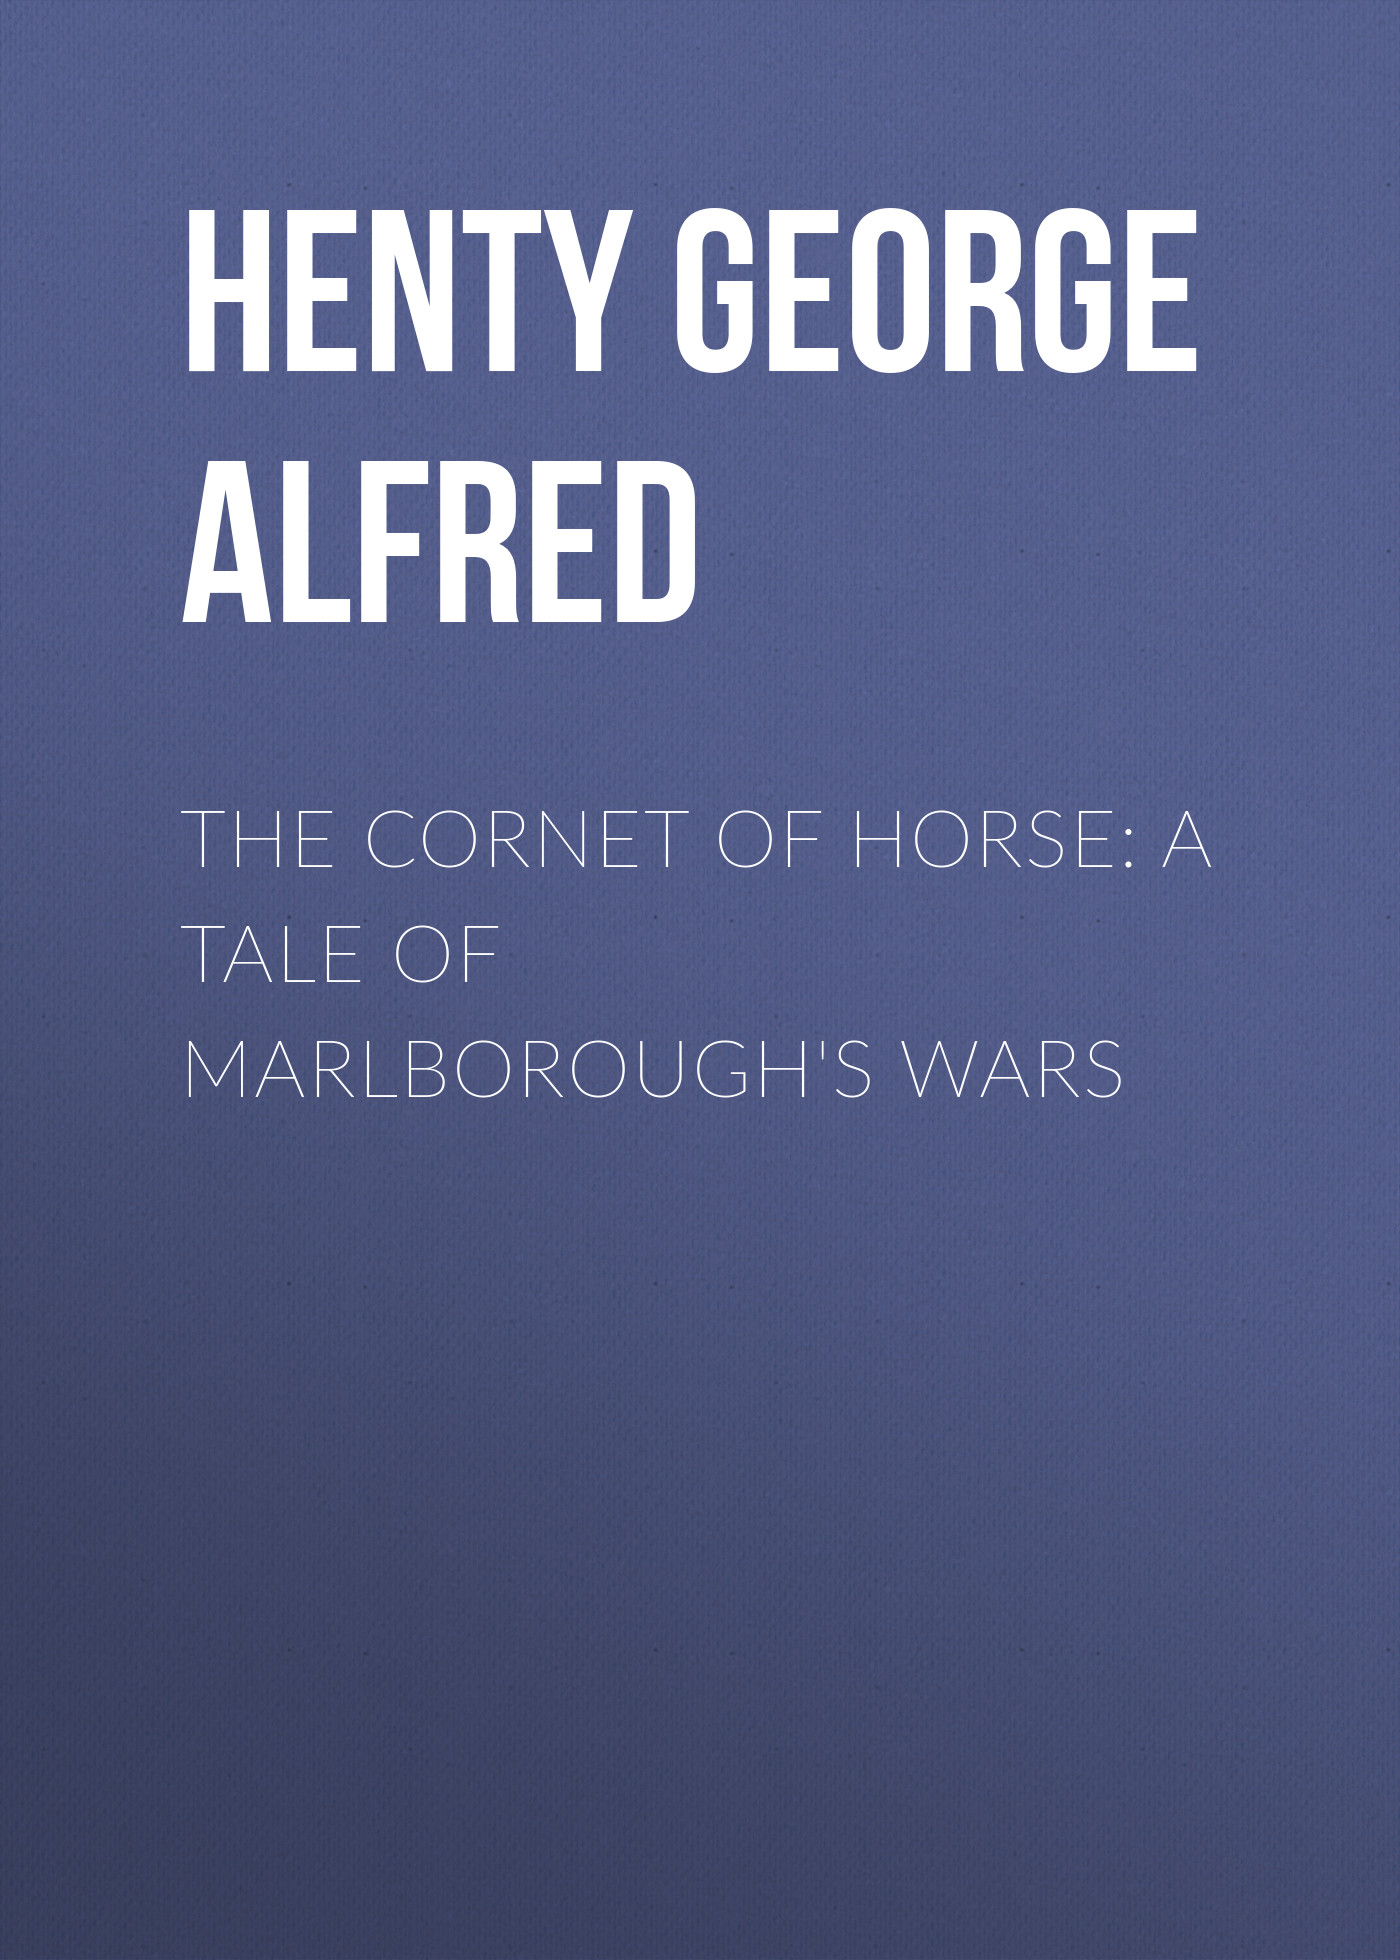 Henty George Alfred The Cornet of Horse: A Tale of Marlborough's Wars henty george alfred redskin and cow boy a tale of the western plains